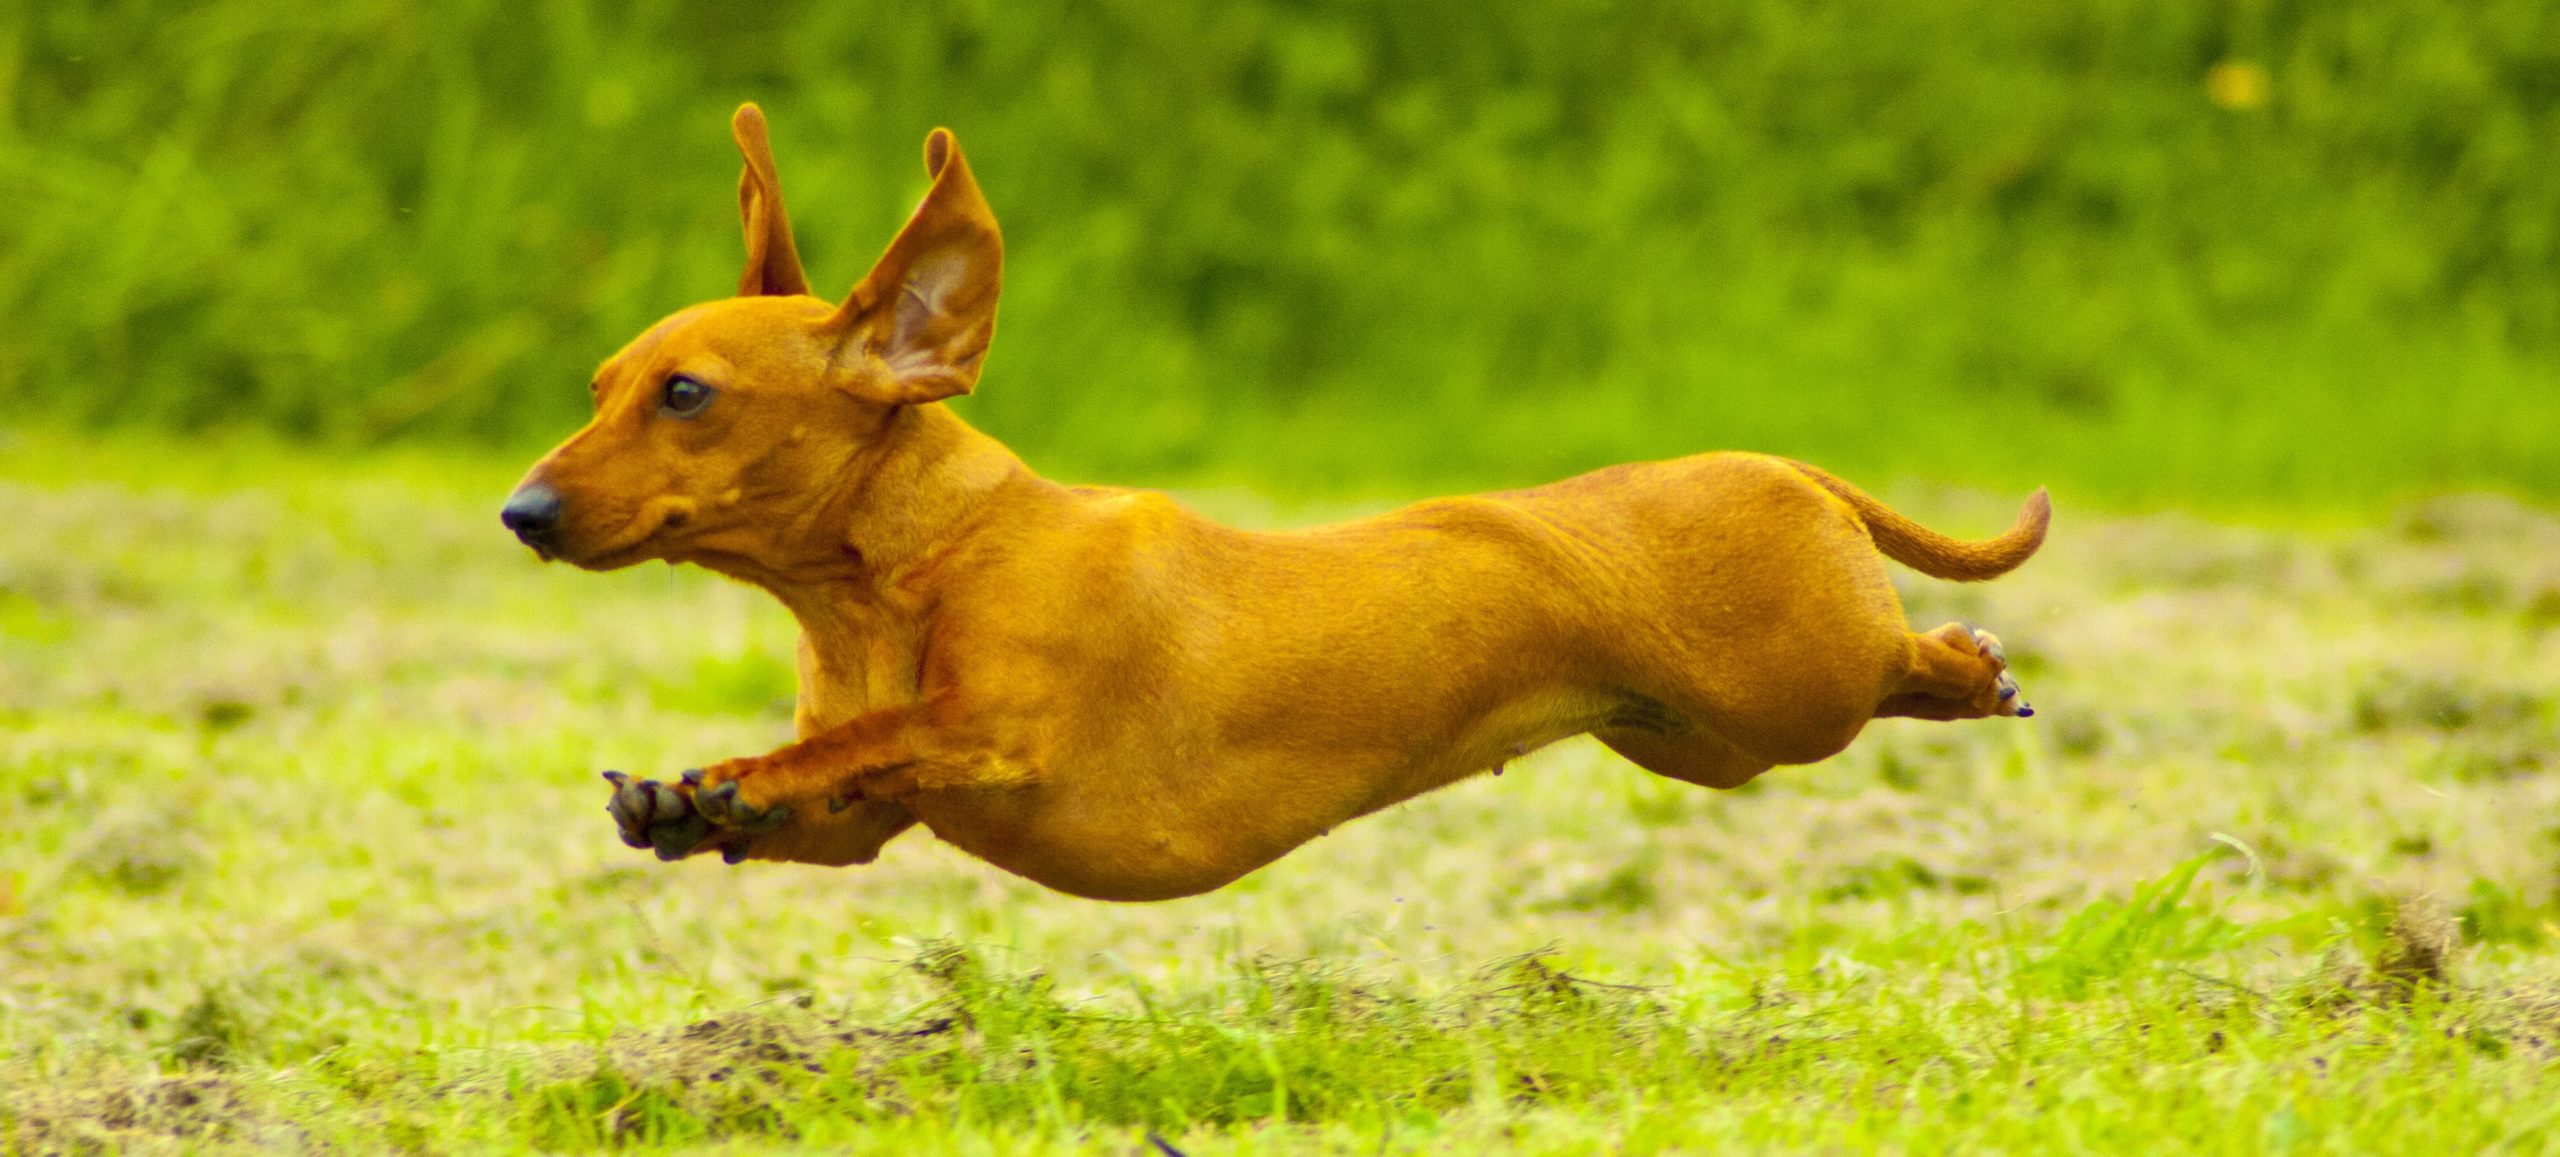 The best Fence for Dogs depends on breed and personality